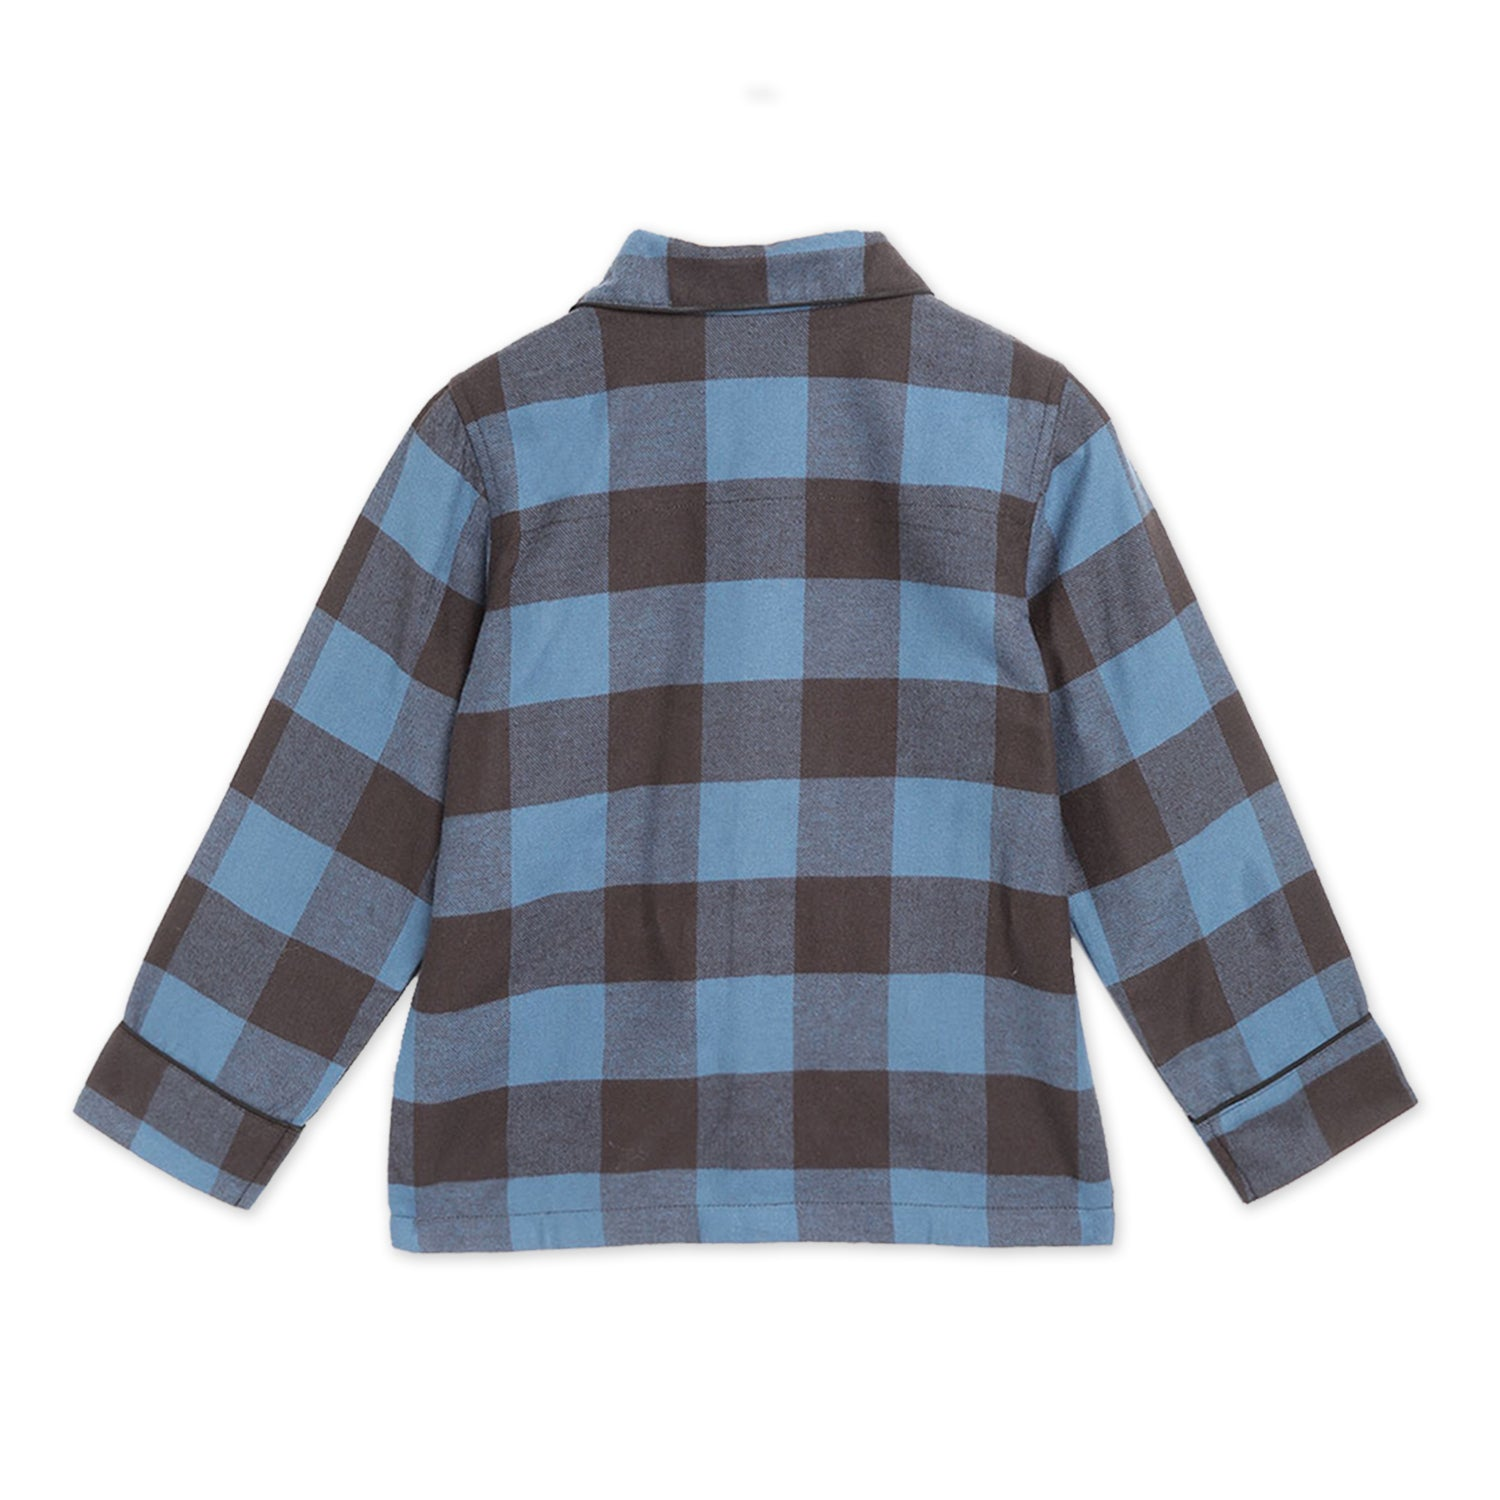 Cherry-Crumble-Kids-Unisex-Long-Regular-Sleeves-Collared-Full-Length-Checkered-Shirt-Pyjama-Nightsuit